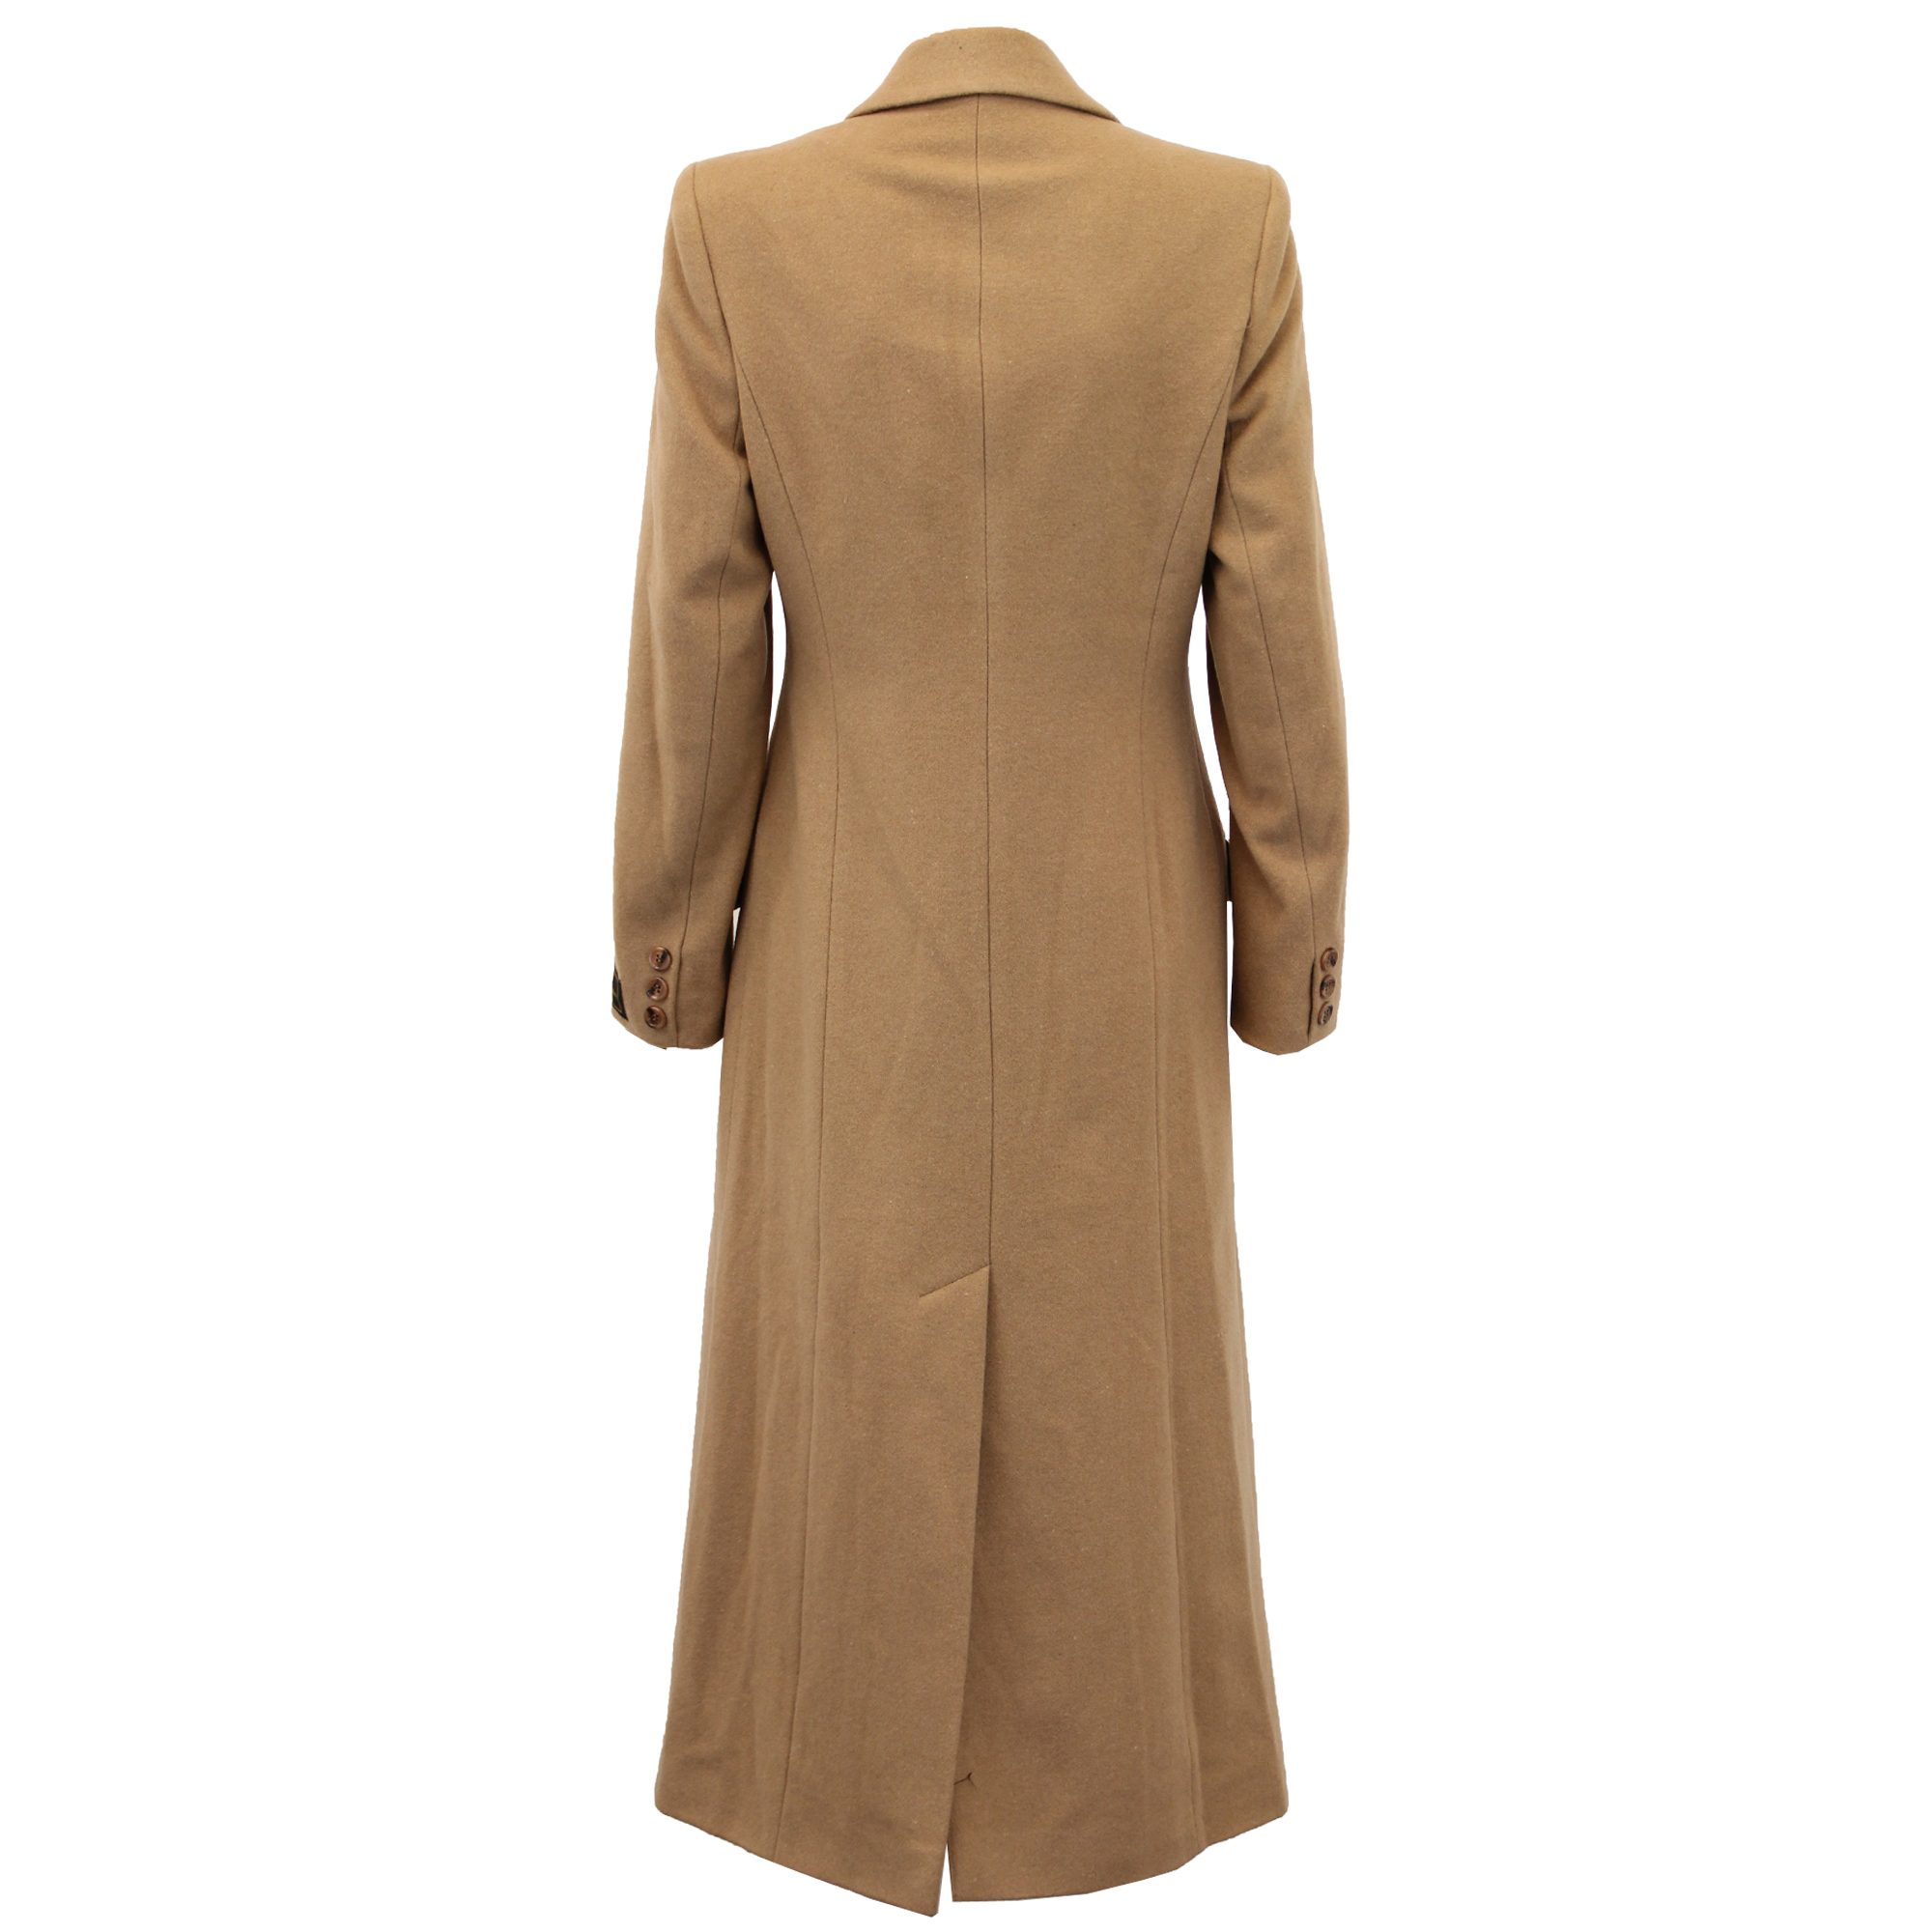 Ladies-Wool-Cashmere-Coat-Women-Jacket-Outerwear-Trench-Overcoat-Winter-Lined thumbnail 28